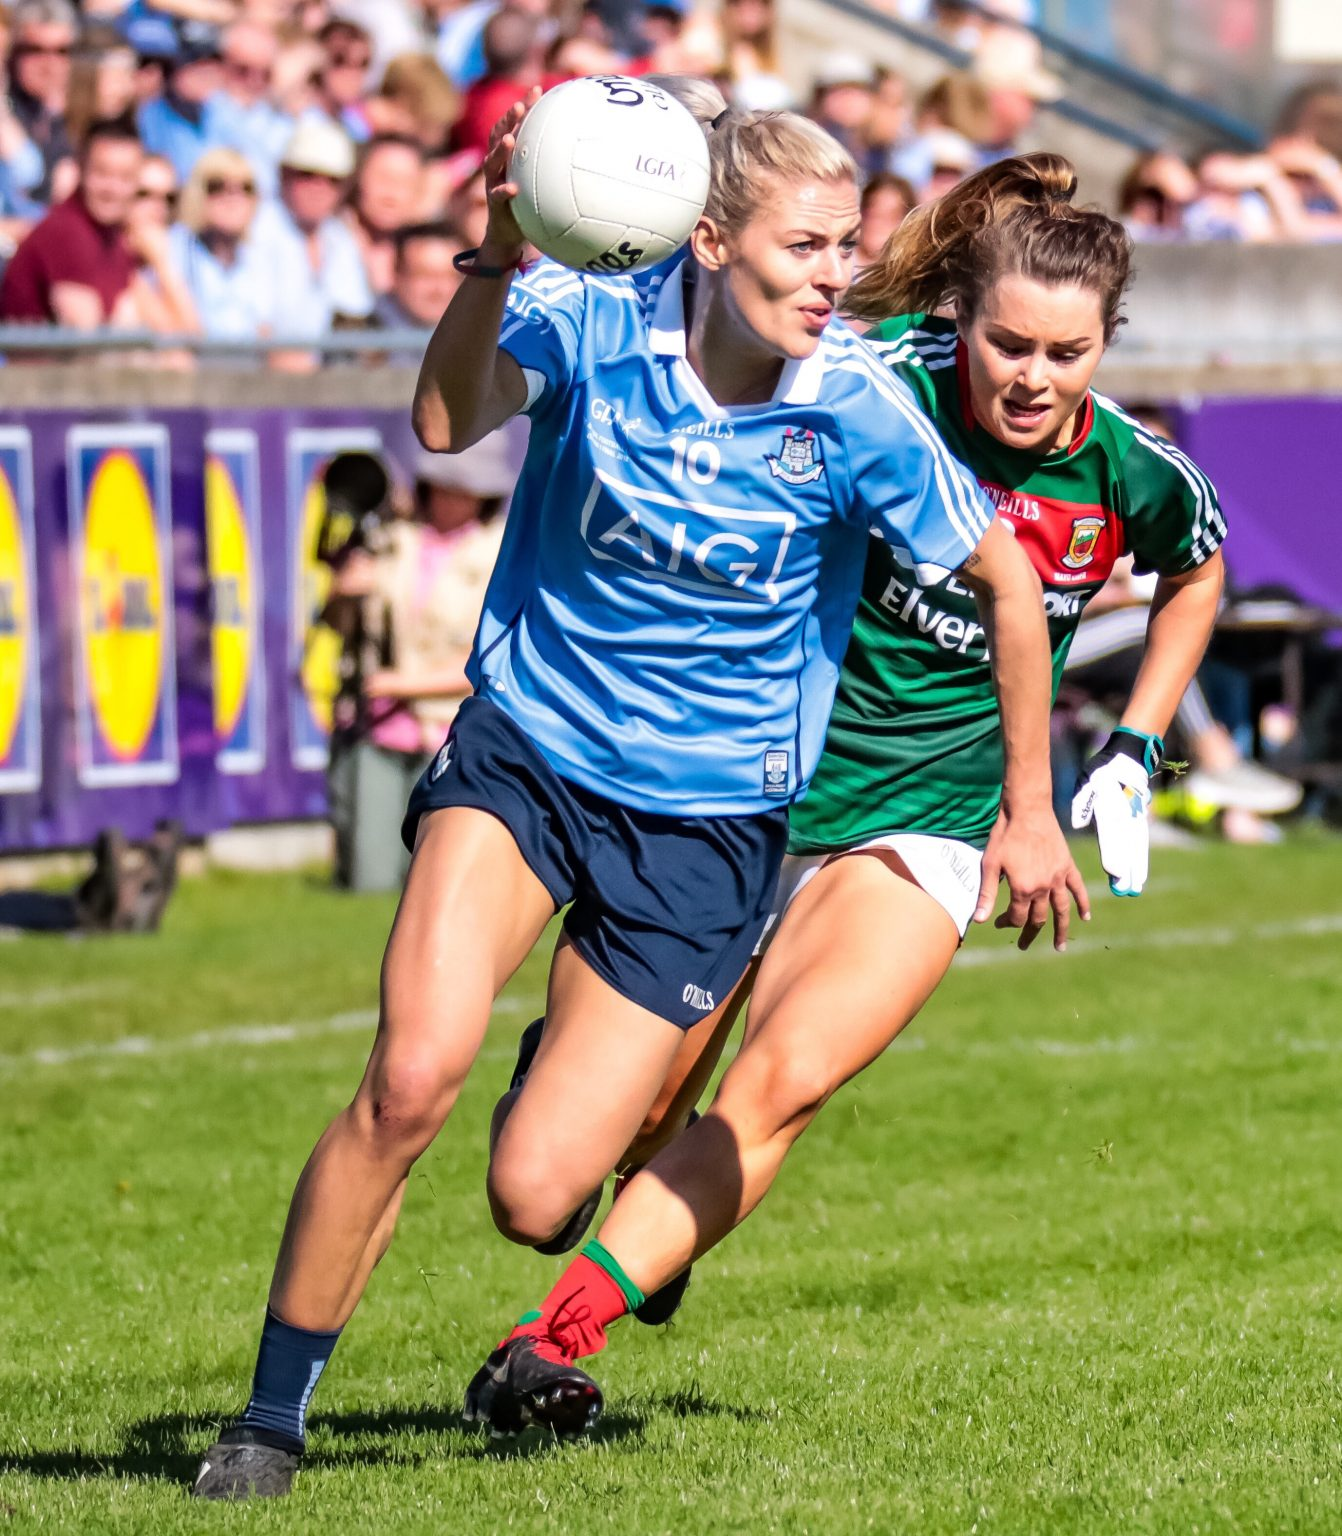 Dublin's Nicole Owens In a Sky Blue Jersey gets away from a Mayo player in a green and red jersey as Dublin win first ever Division 1 League title